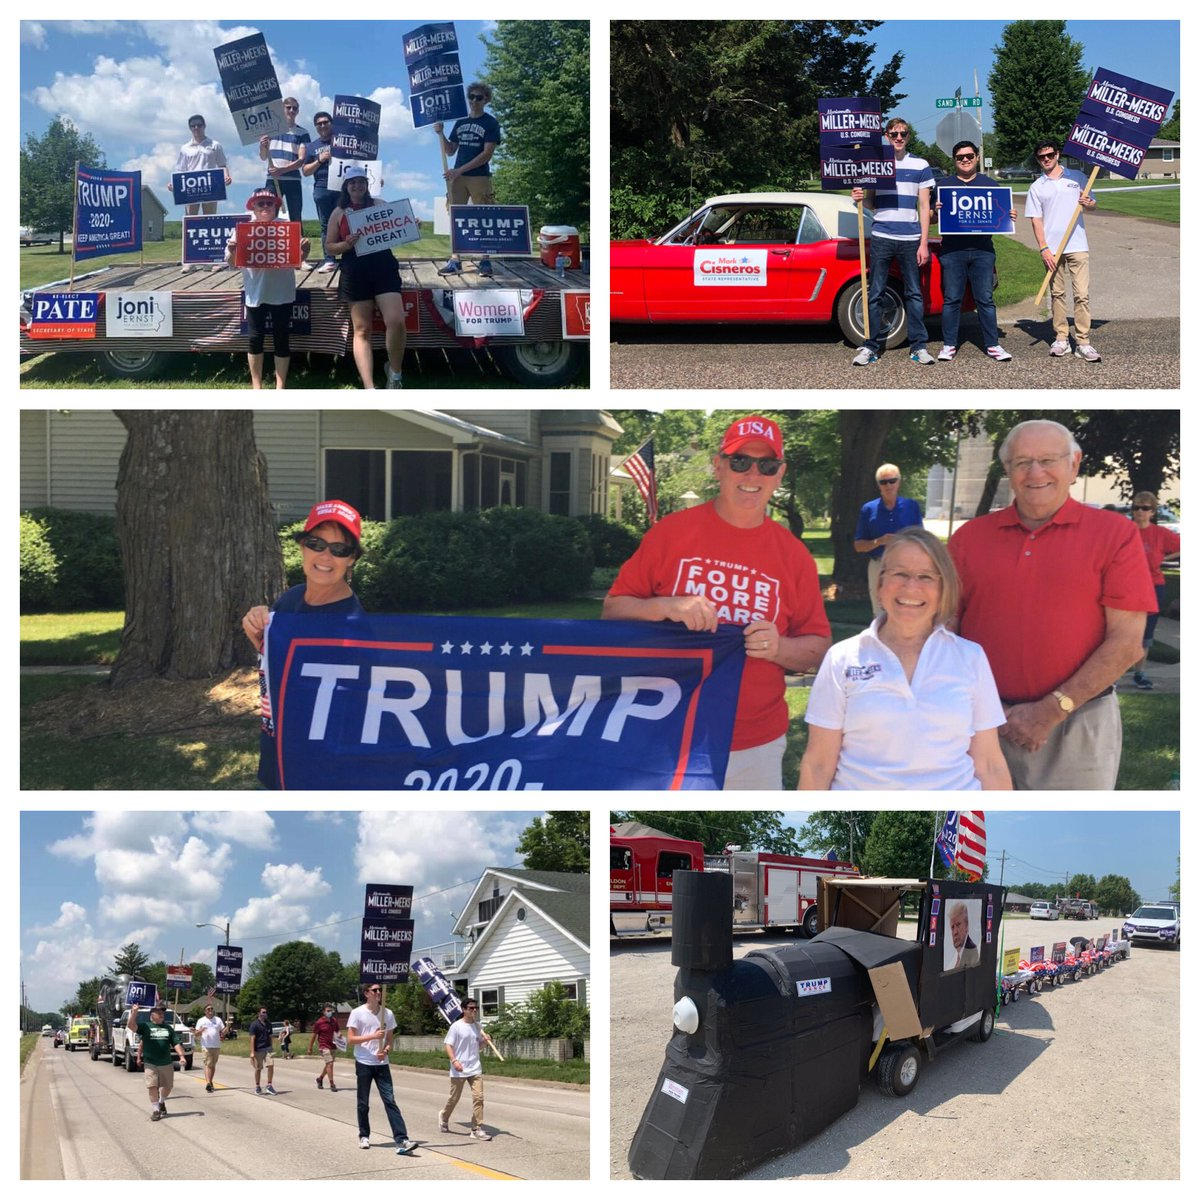 We had a wonderful weekend visiting towns across the 2nd district this 4th of July weekend!   Thank you for hospitality, good food and fireworks! #ia02